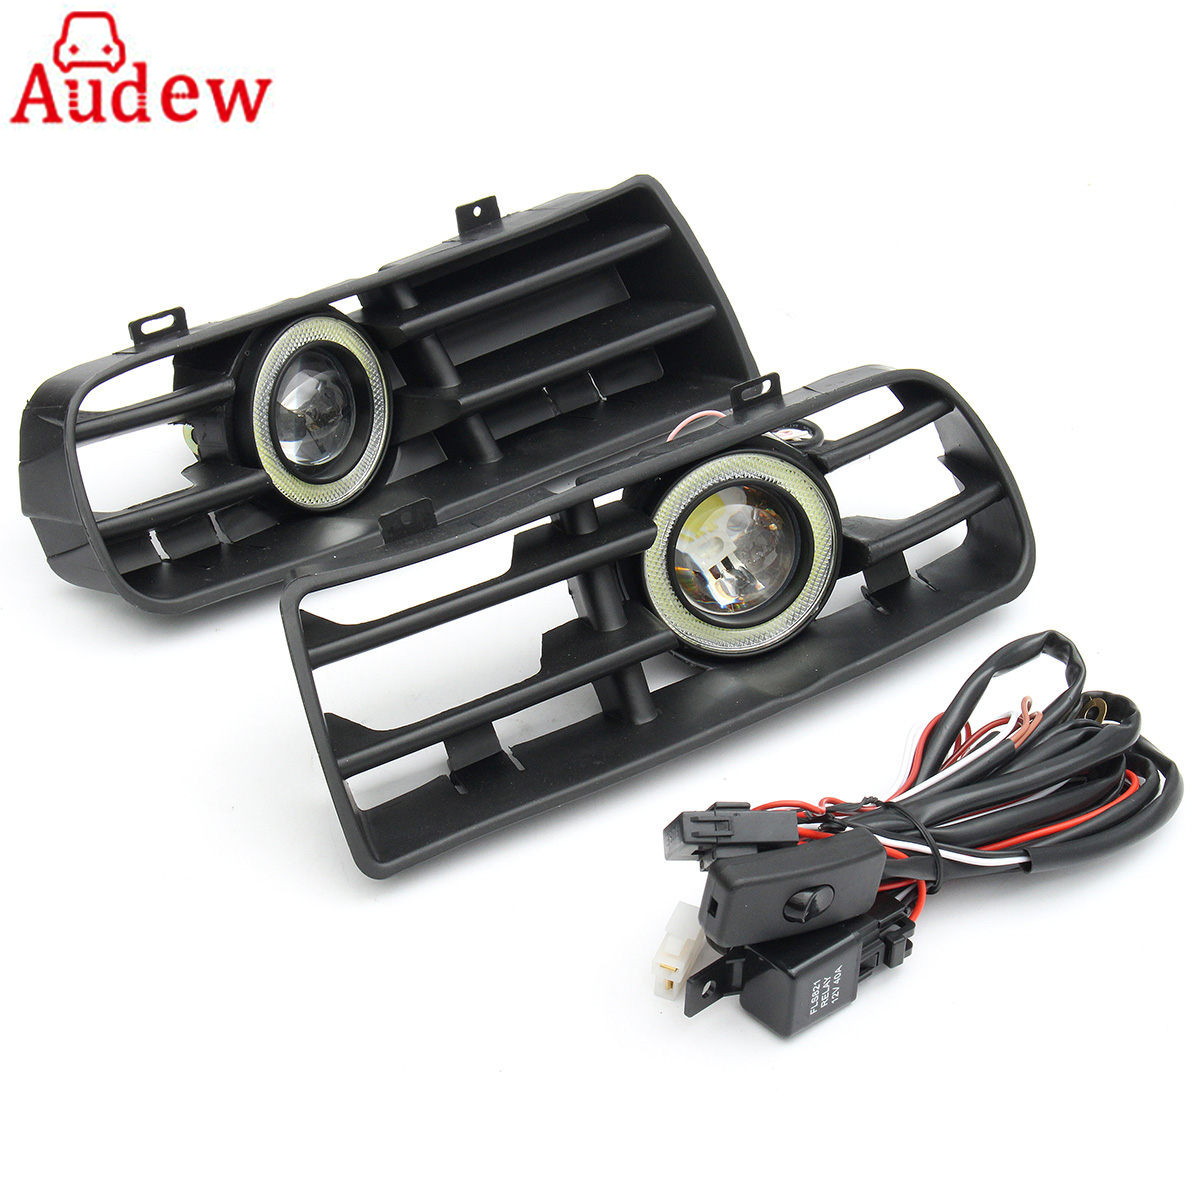 1Pair LED Fog Lights Angel Eyes Lamp Car Front Bumper Grille Grill Cover With Wire Kit For VW Golf MK4 98-04 front bumper fog lamp grille led convex lens fog light angel eyes for vw polo 2001 2002 2003 2004 2005 drl car accessory p364